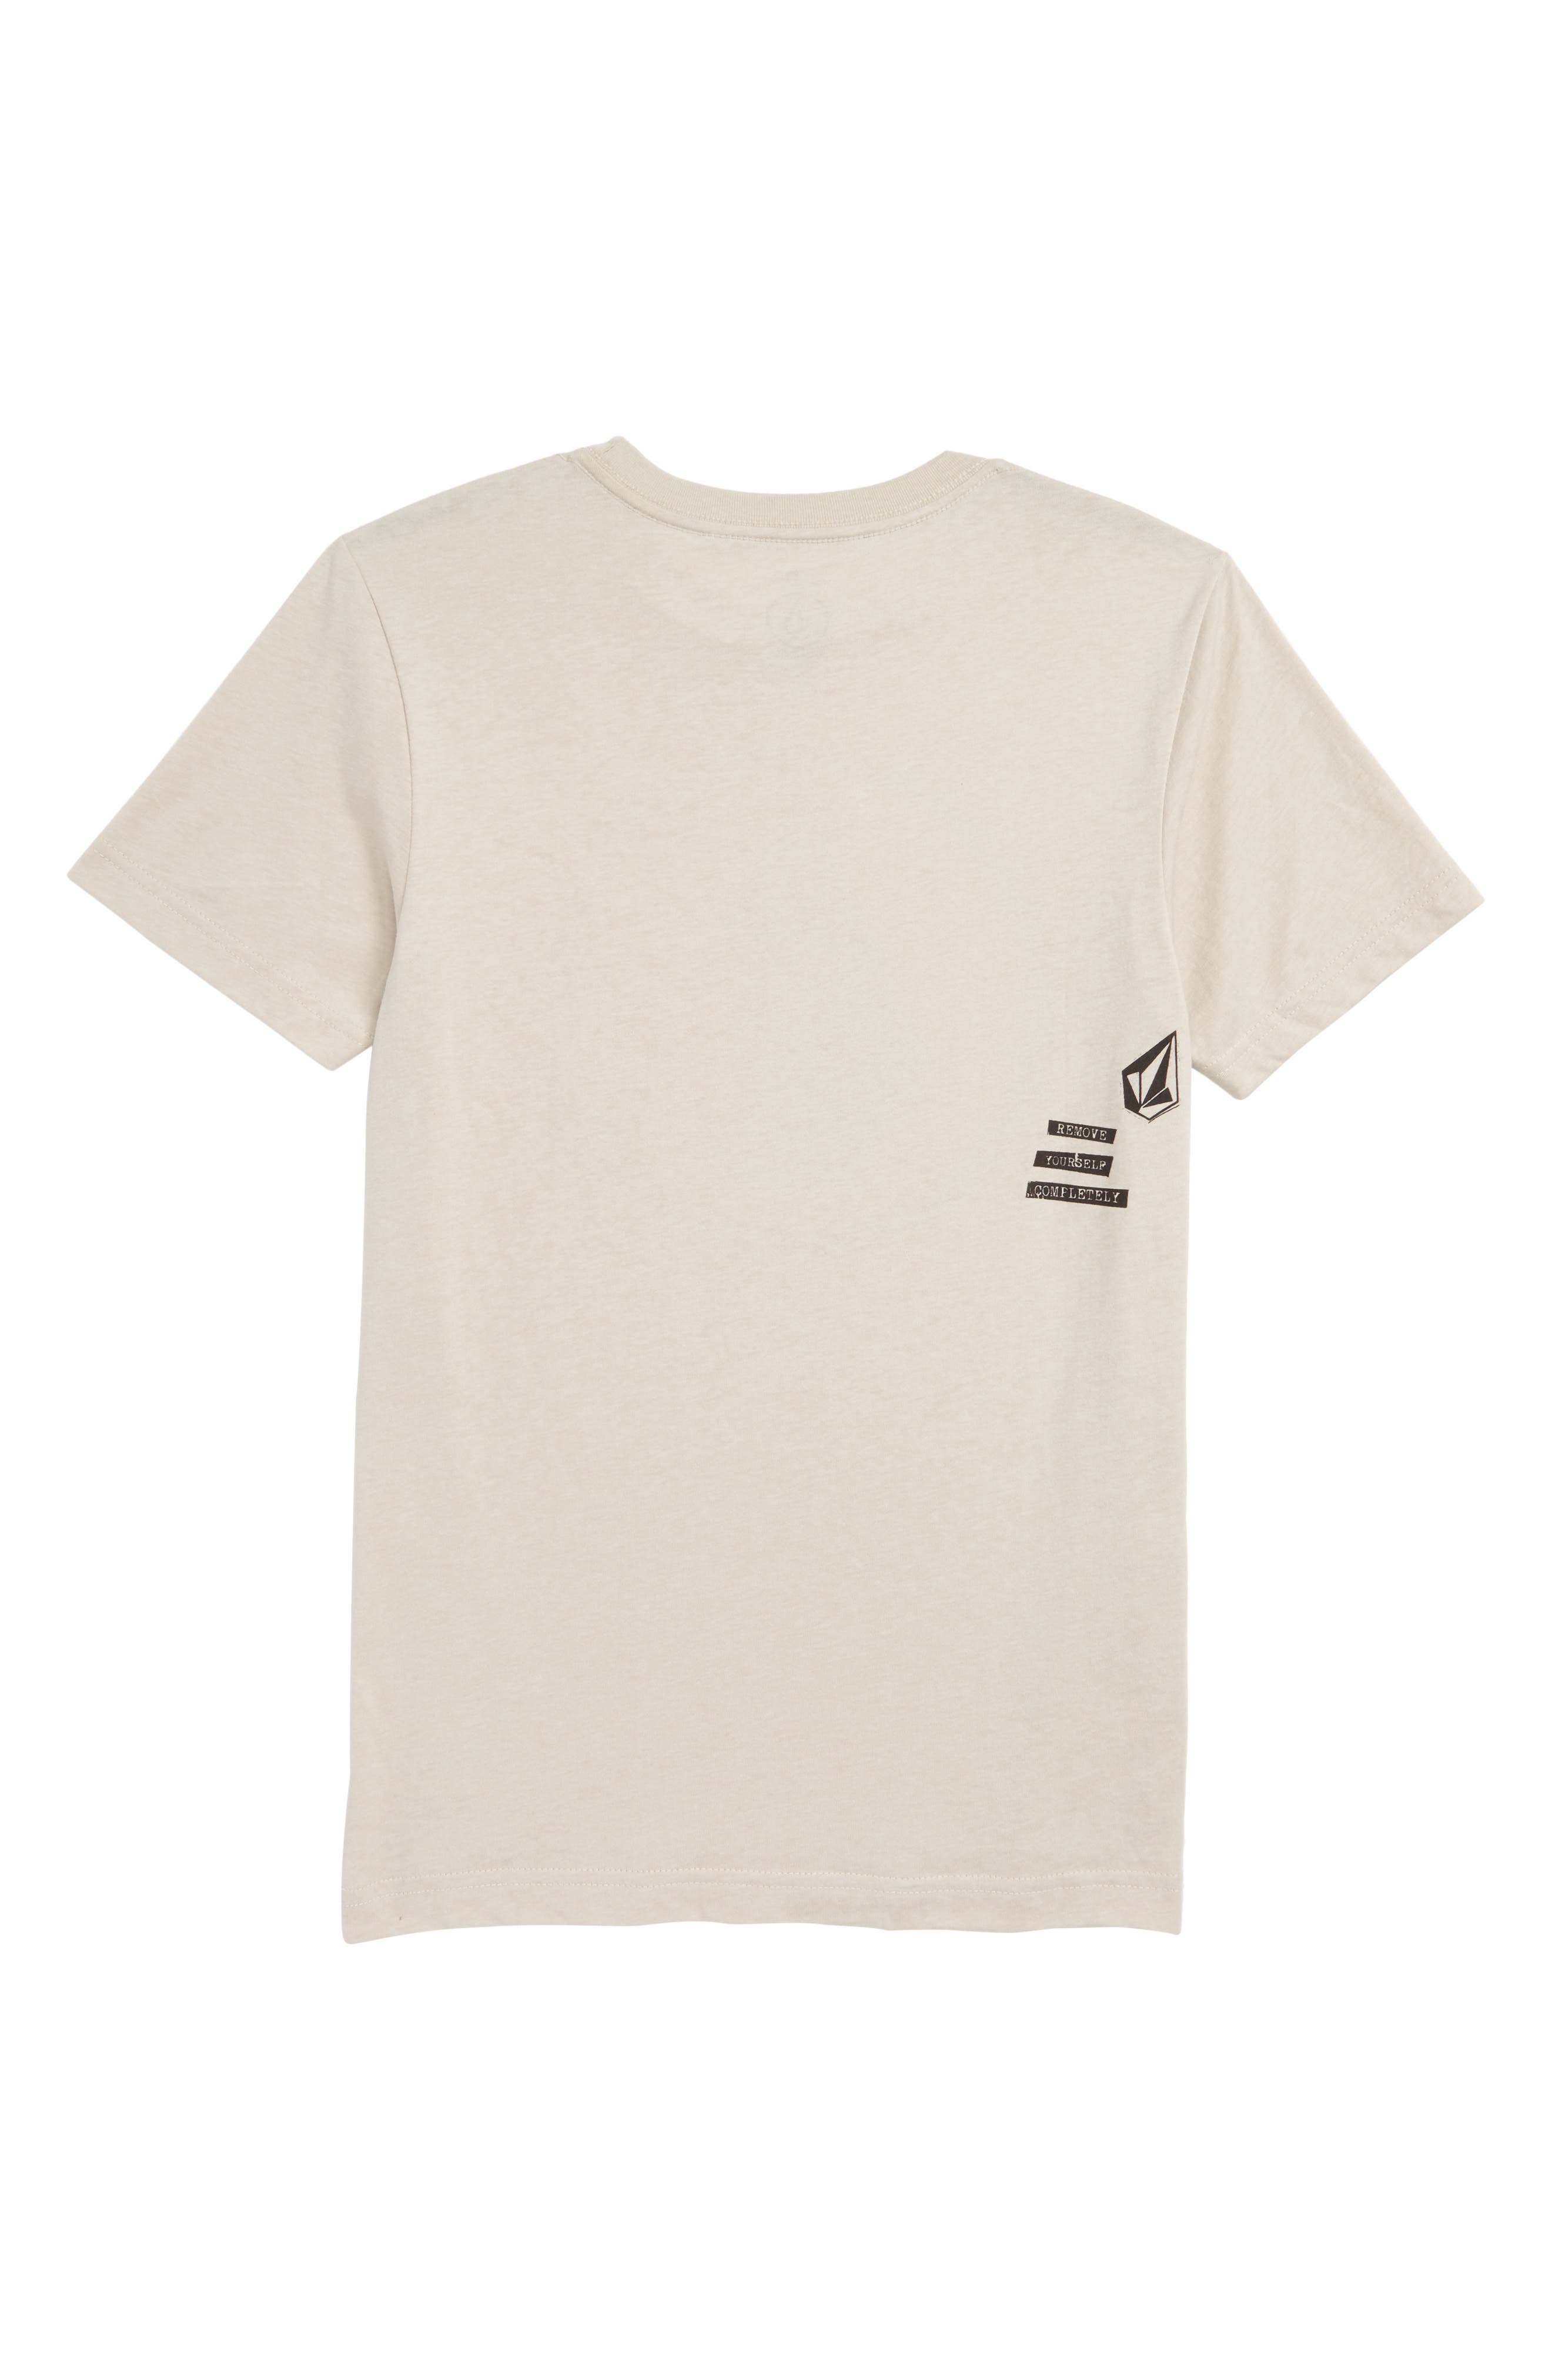 VOLCOM,                             Removed Graphic T-Shirt,                             Alternate thumbnail 2, color,                             260